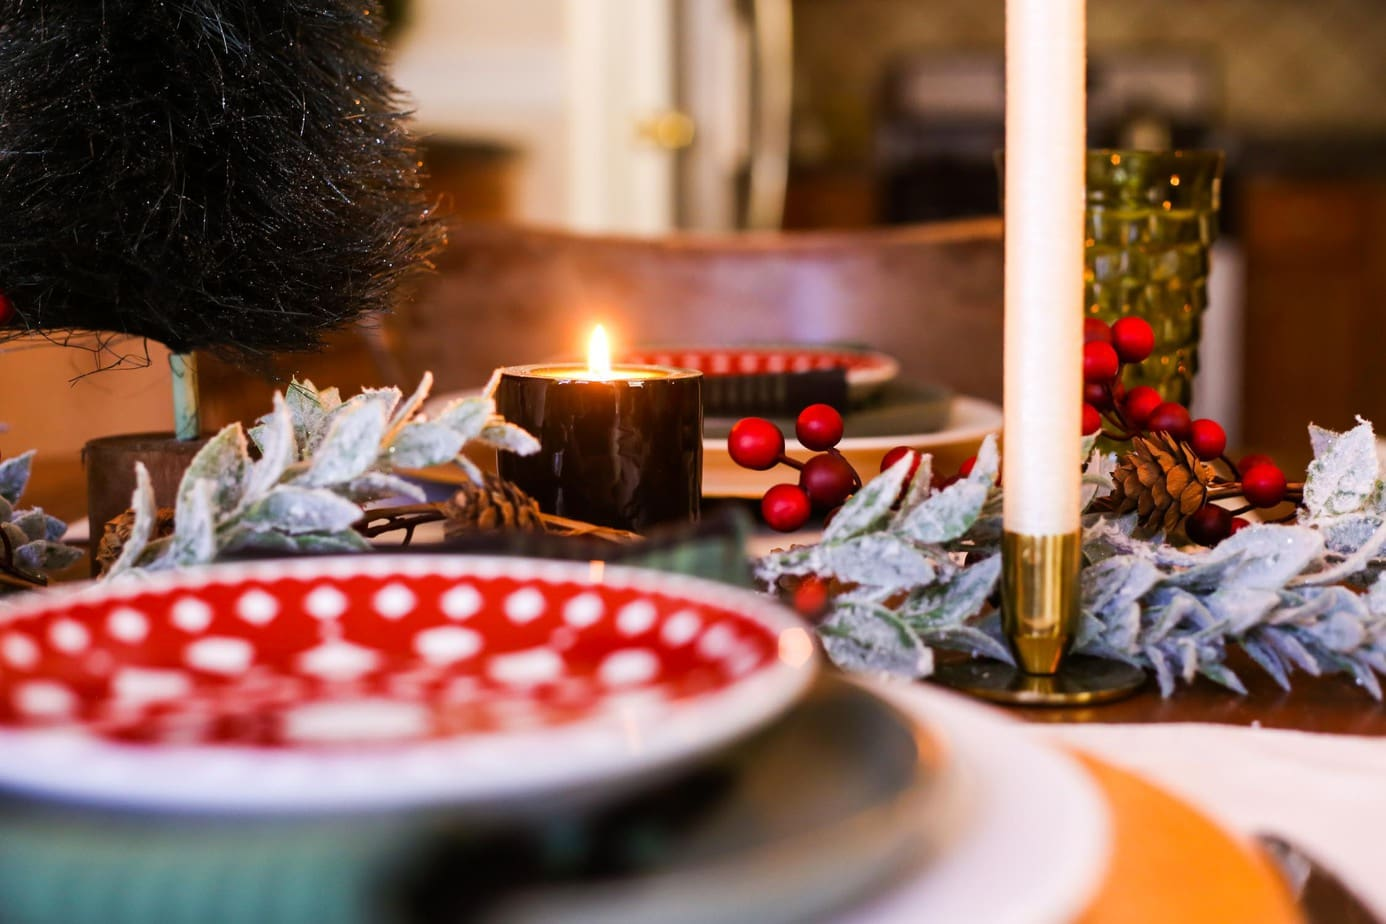 A charming Christmas table, with traditional red and green decor